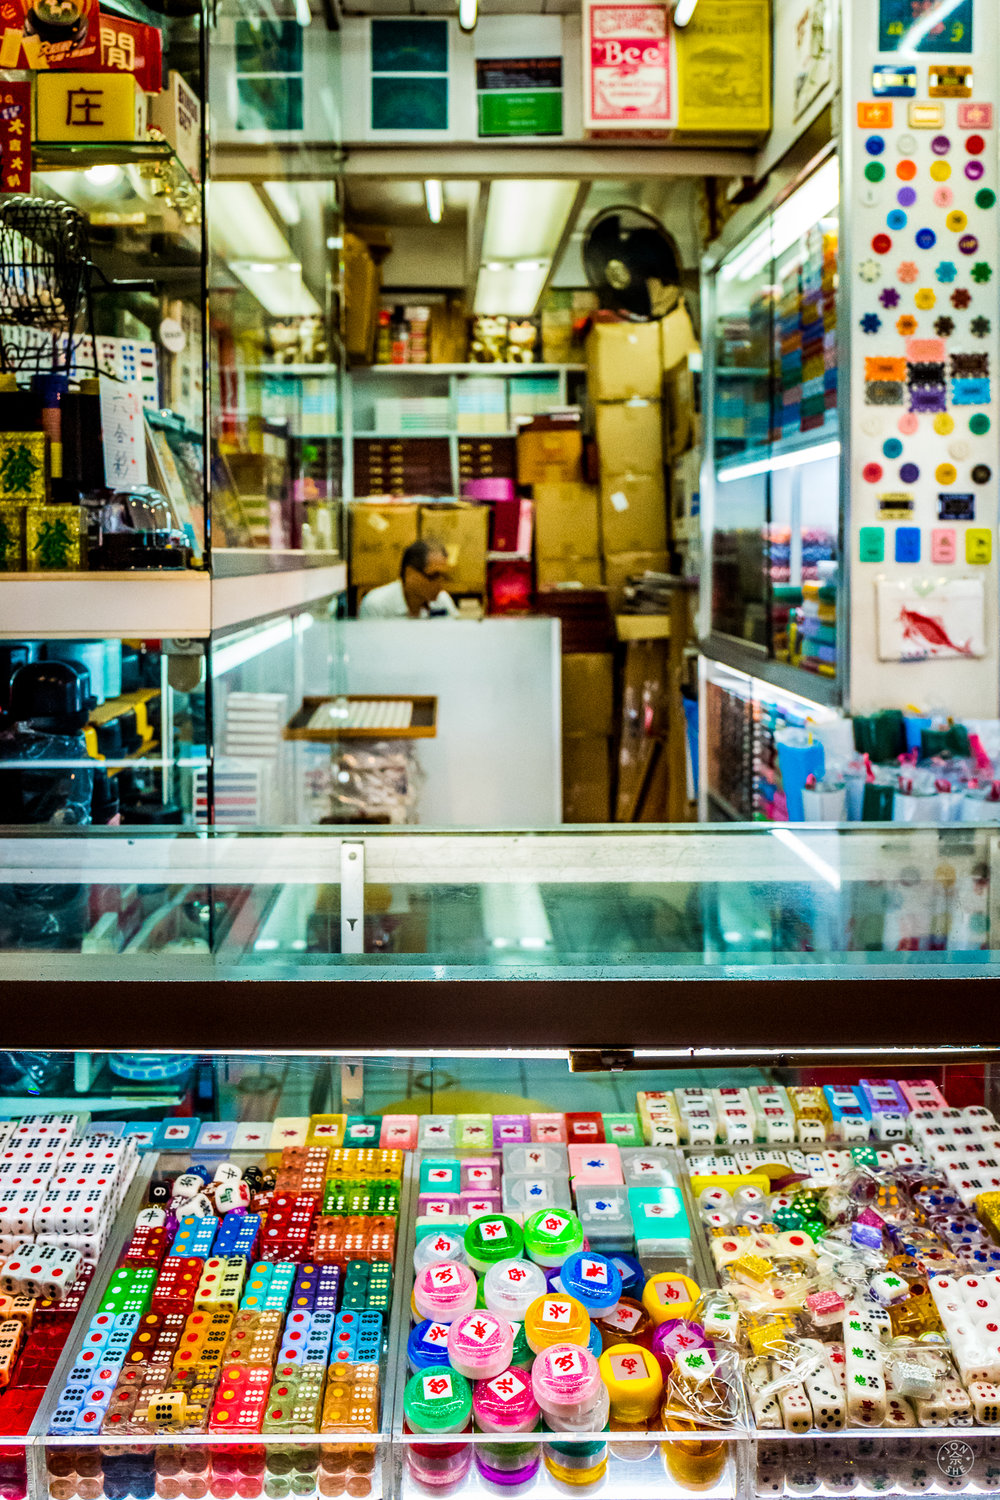 """Gambling and Gaming Supply Store"". Late night gaming and gambling dens are another common site in Hong Kong, as are vendors that support that nocturnal ecosystem.  This shot is of a supplier of dice, chips, mahjong tiles, cards, and the myriad other paraphernalia needed for games.  Kowloon, Hong Kong, China. June 2016. Leica Q (Typ 116), Leica Summilux-M 28mm ASPH. © Jon She."